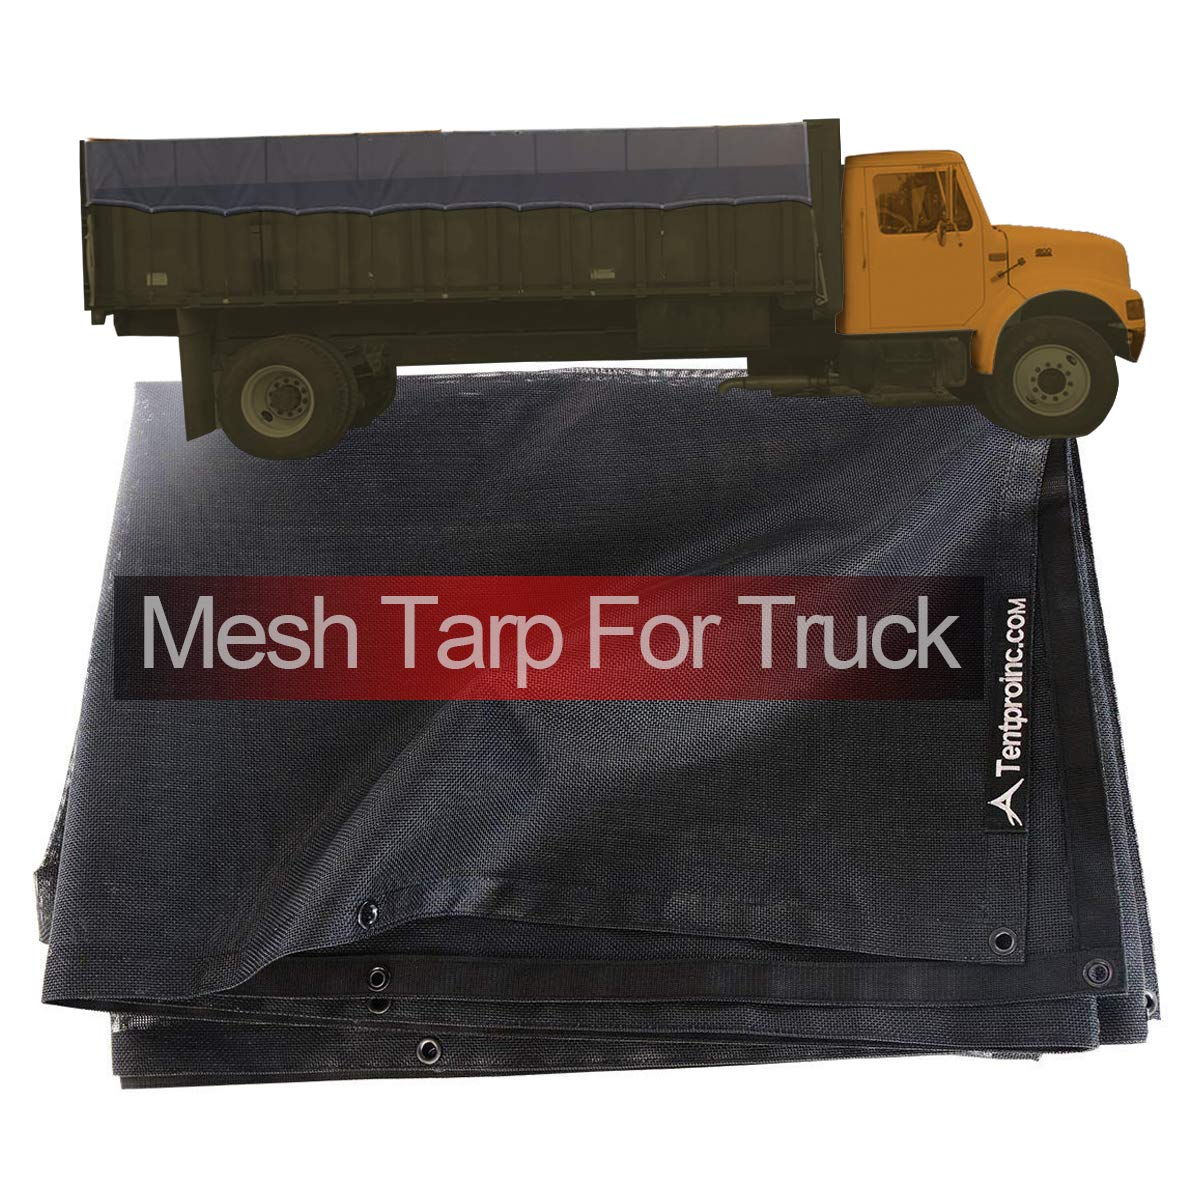 Tentproinc Truck Mesh Tarp 9' X 12' Black Heavy Duty Cover Reinforced Double Needle Stitch Webbing Ripping and Tearing Stop, No Rust Thicker Brass Grommets - 3 Years Limited Warranty